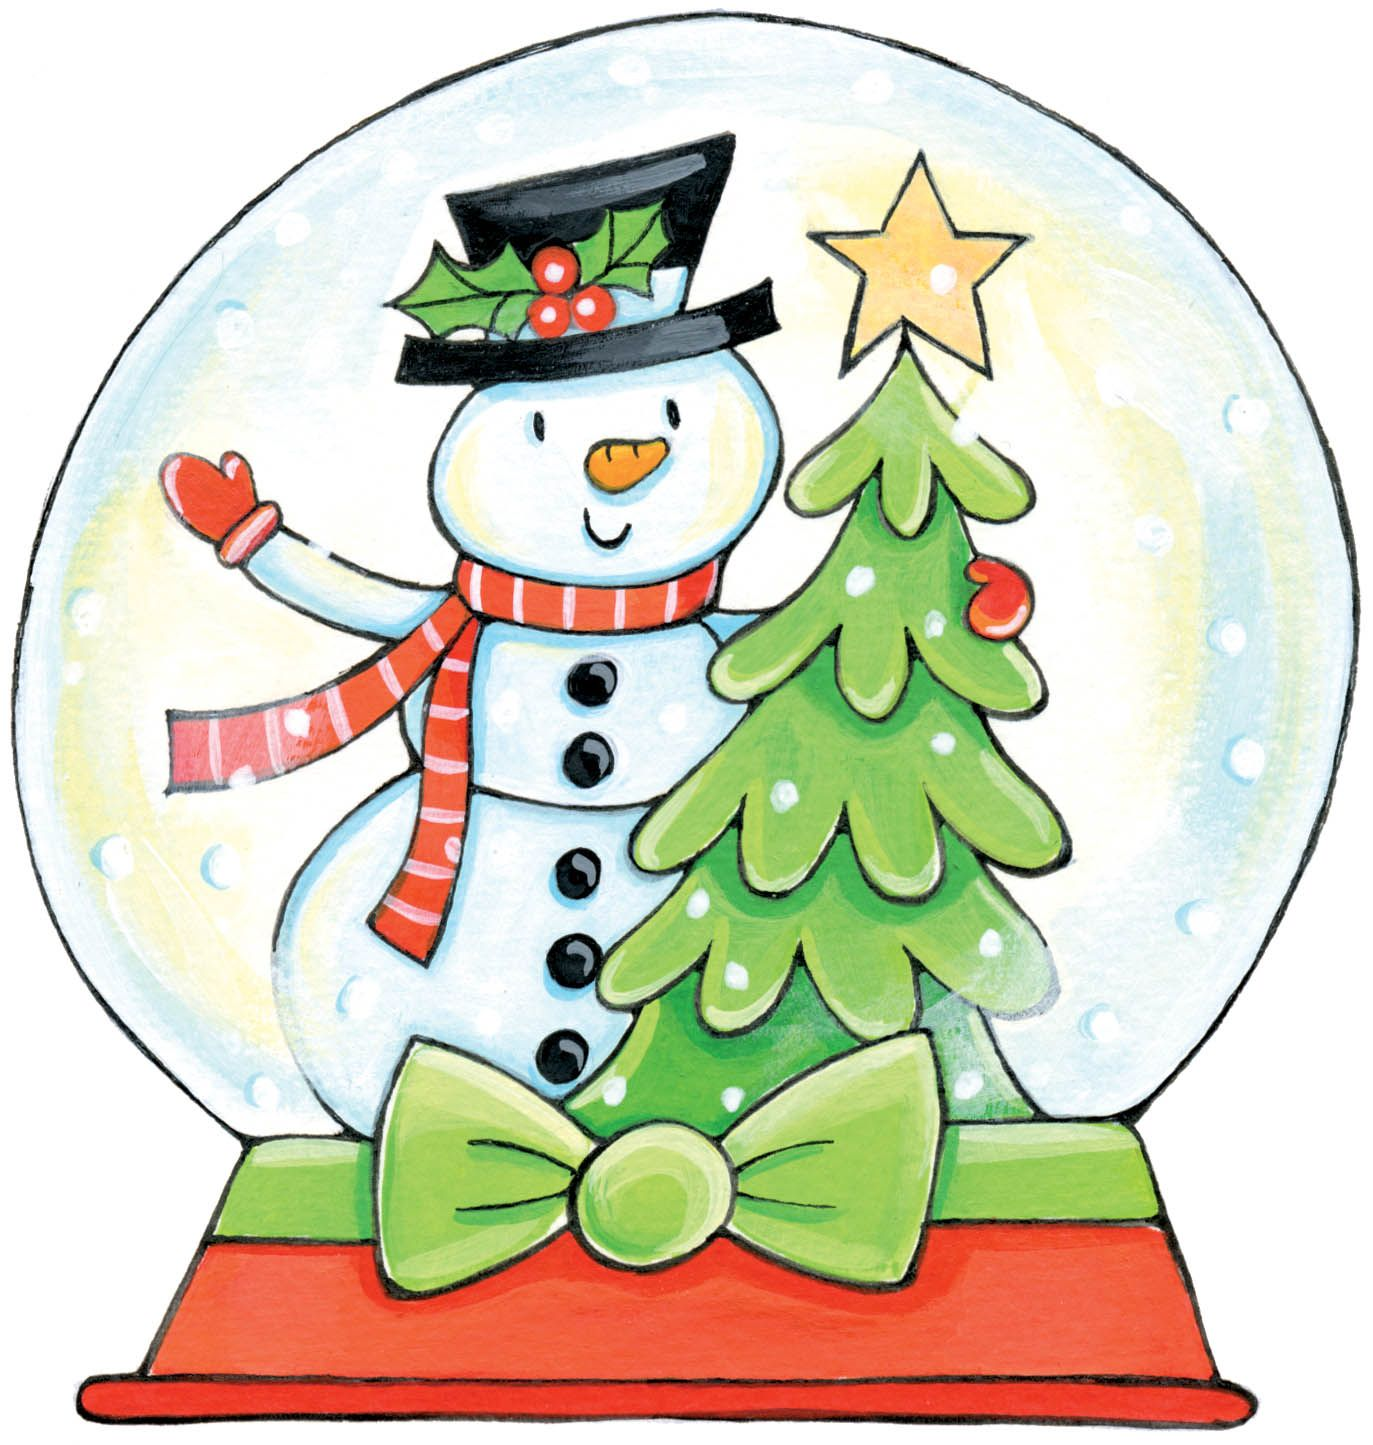 snow globe animated clip art christmas snow globes clip art snow rh pinterest com clipart snow globe empty snow globe clipart